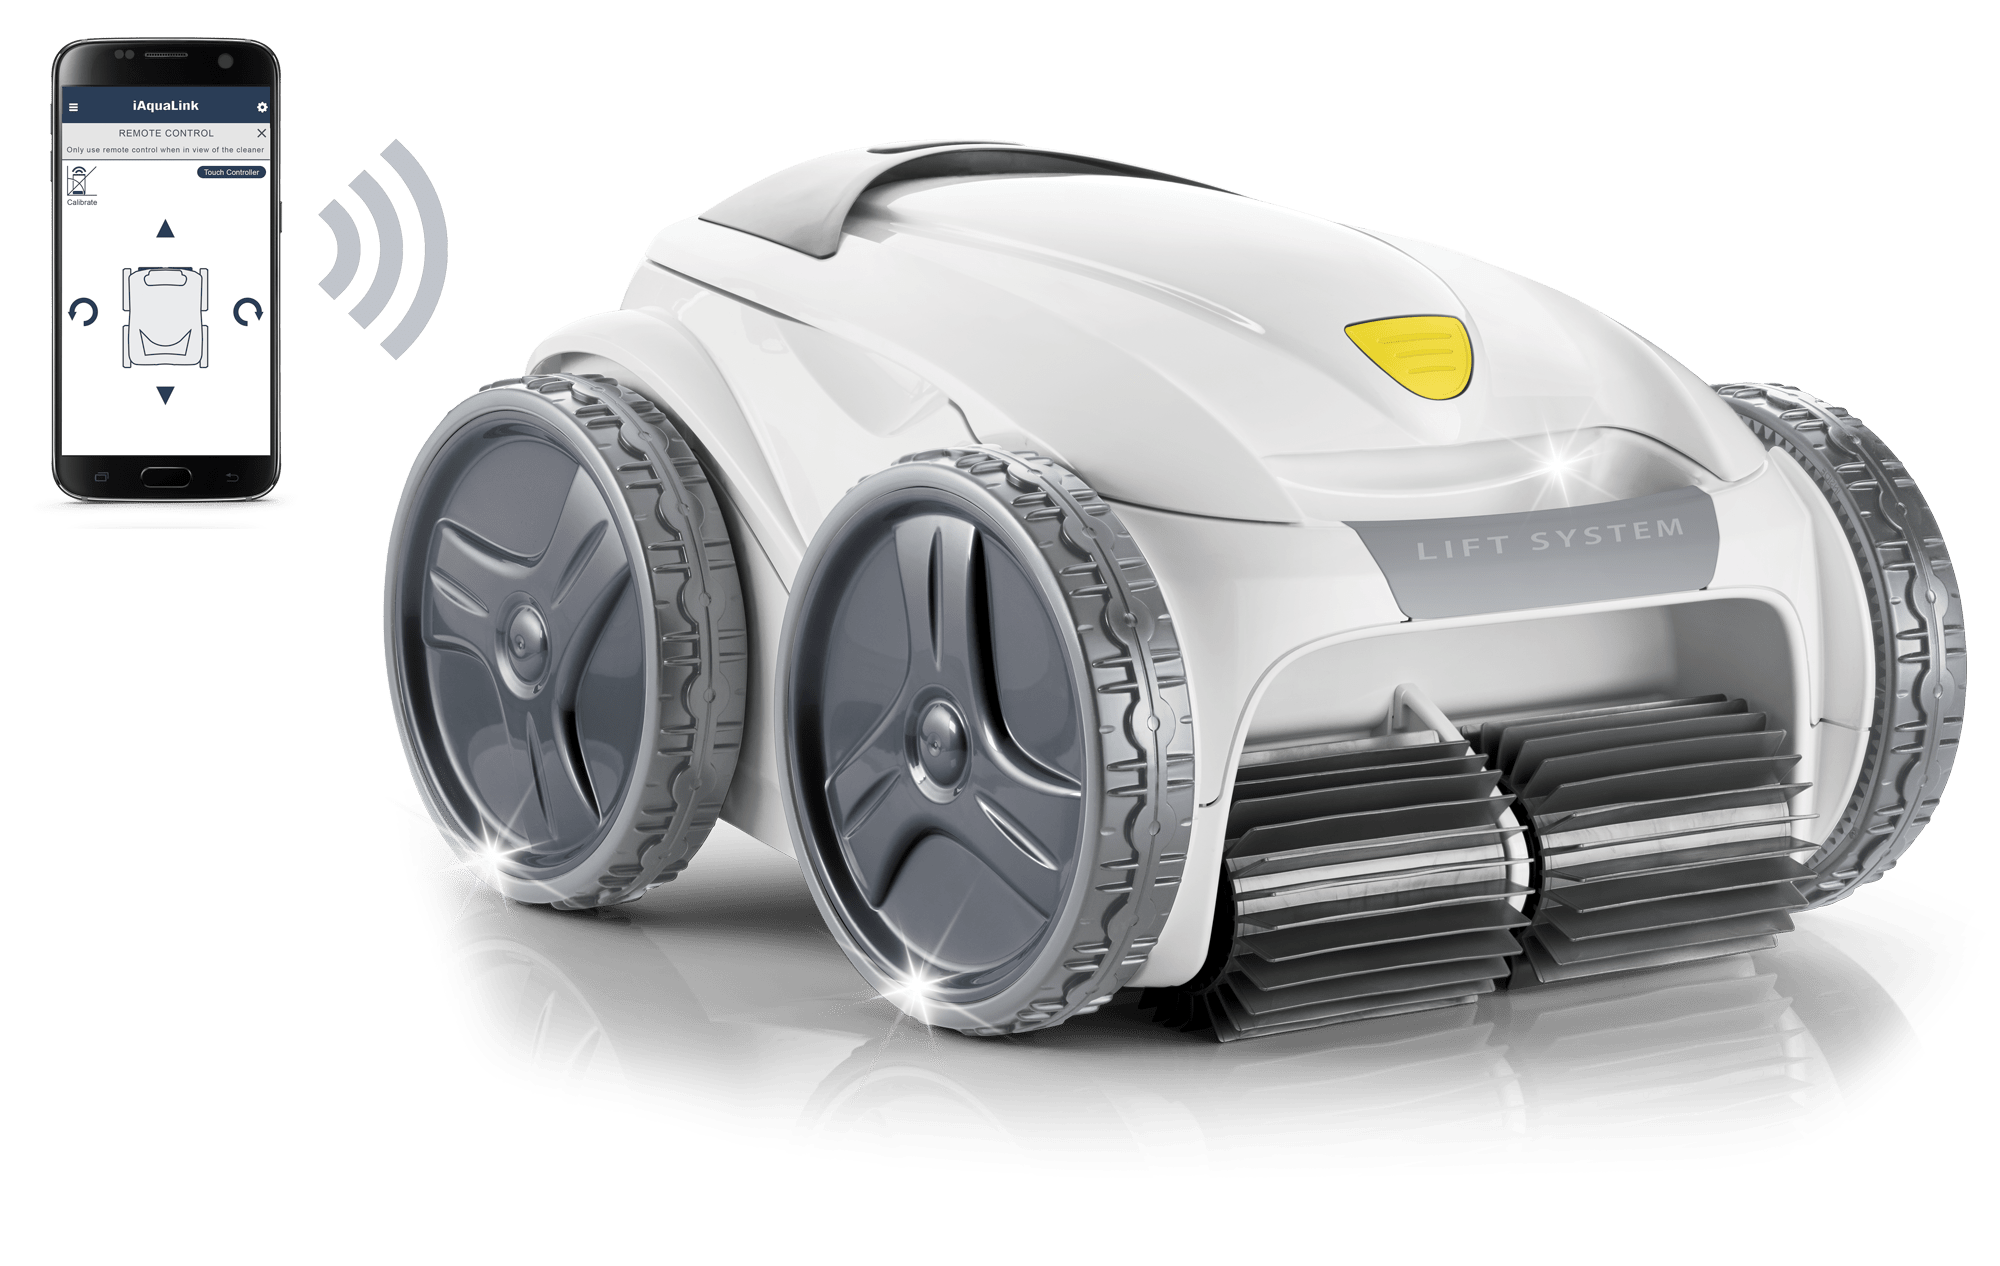 Zodiac VX65iQ Pool Cleaner